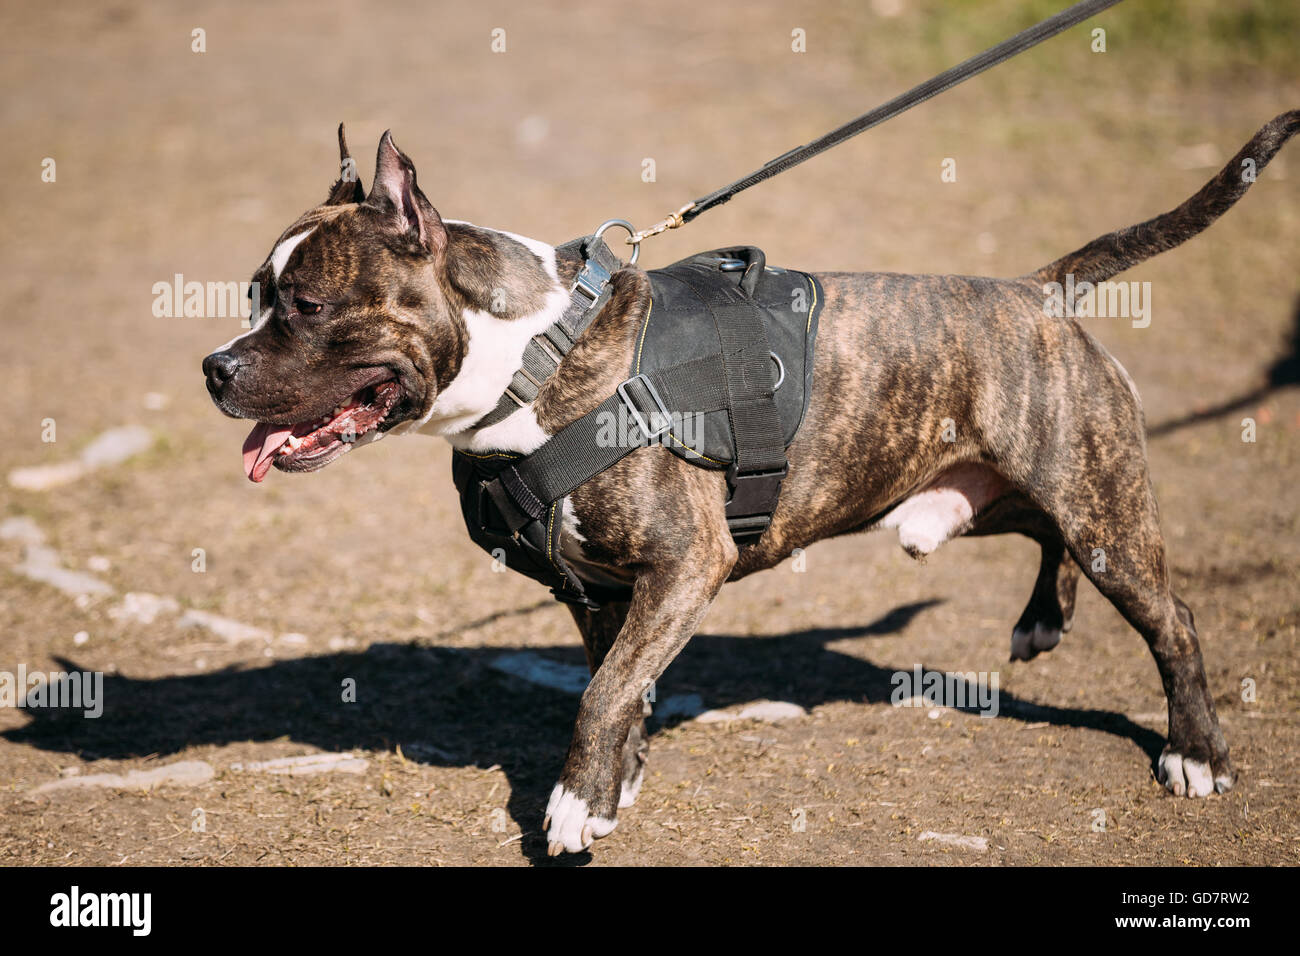 Dog American Staffordshire Terrier Posing On Obedience Training Outdoor - Stock Image